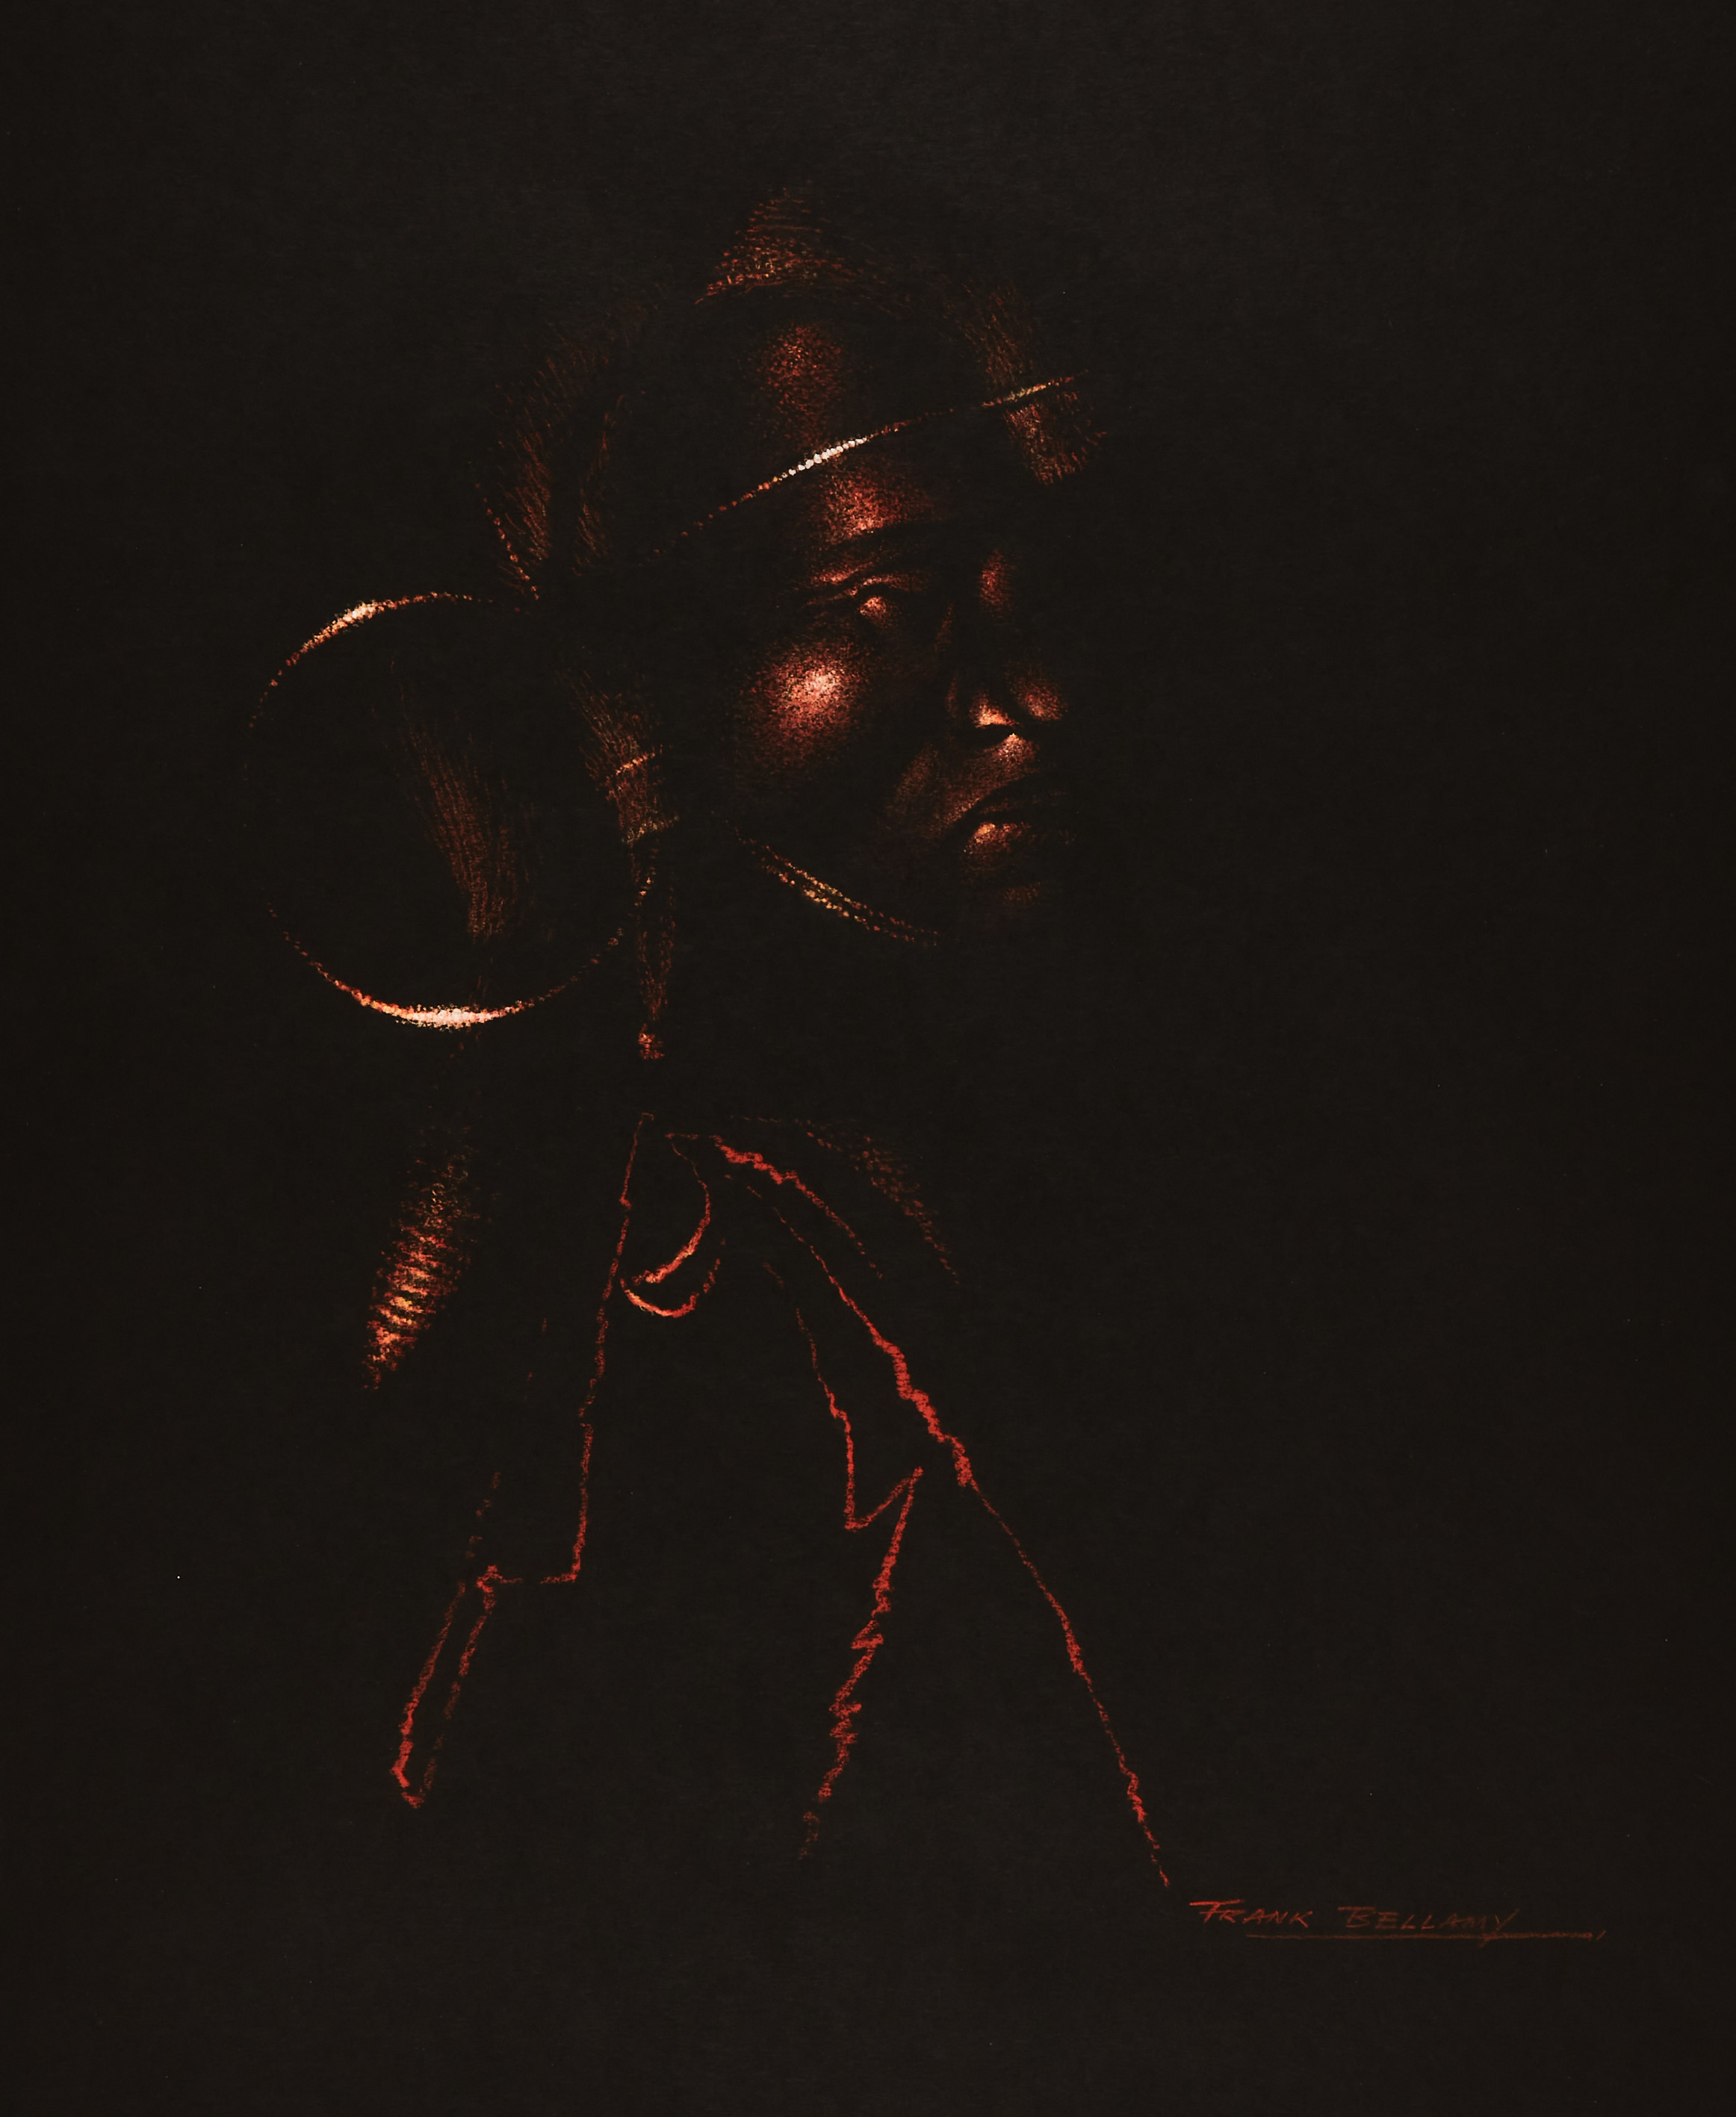 Maasai Warrior drawn and signed by Frank Bellamy (1960s). Terra cotta pastel on black cartridge